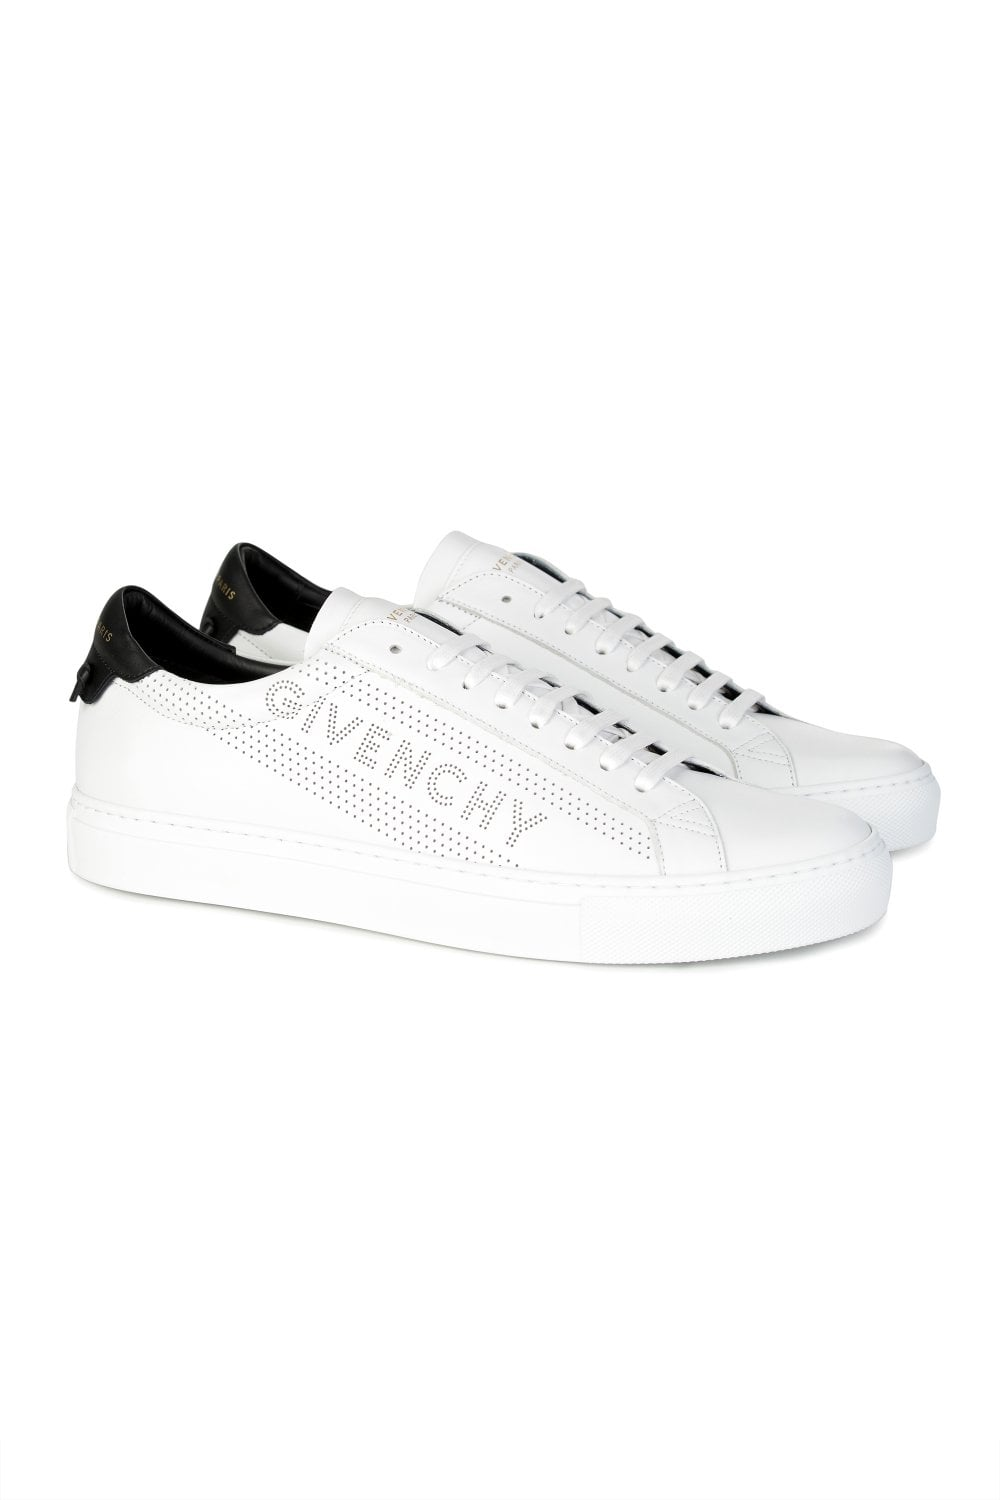 GIVENCHY Givenchy Perforated Low